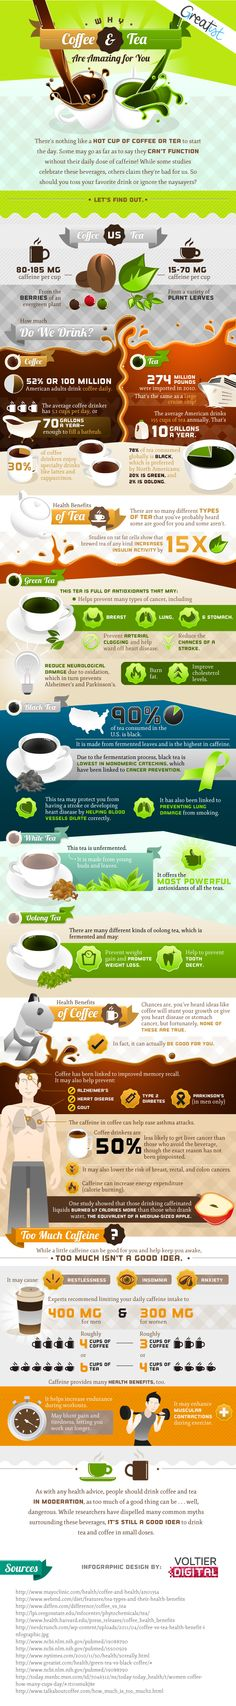 Coffee and tea (don't agree with it all, but a great job on the infographic)